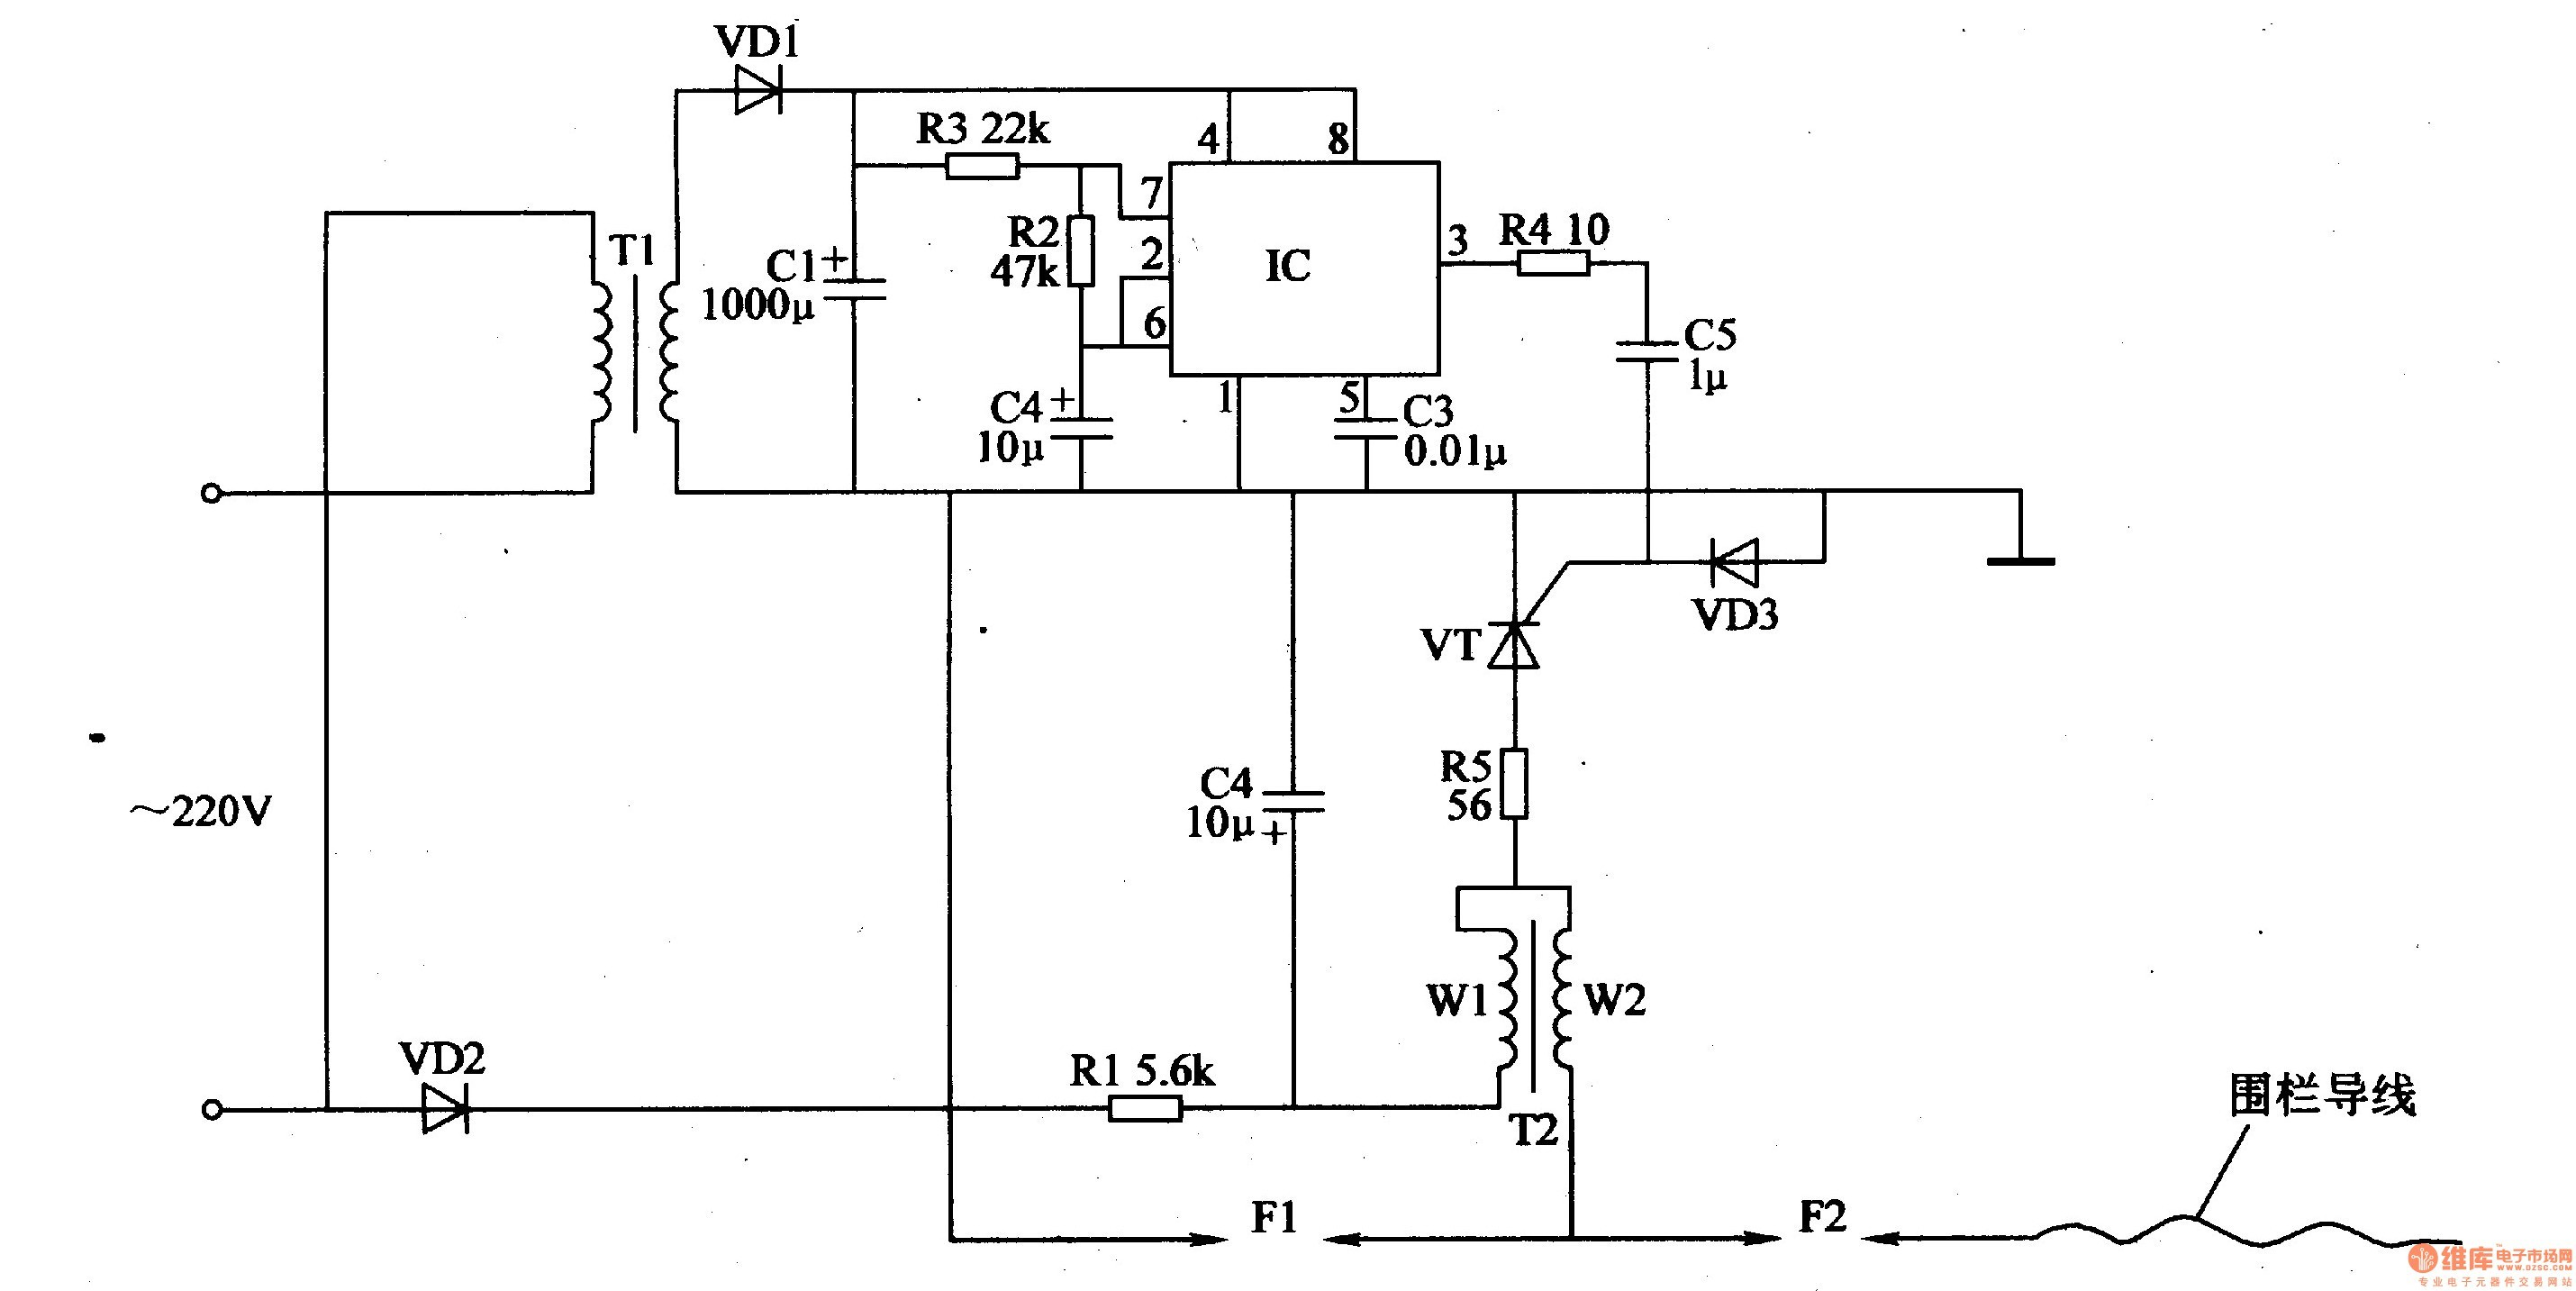 How to Wire An Electric Fence Diagram Fresh High Voltage Electric Fence Circuit • Fences Design